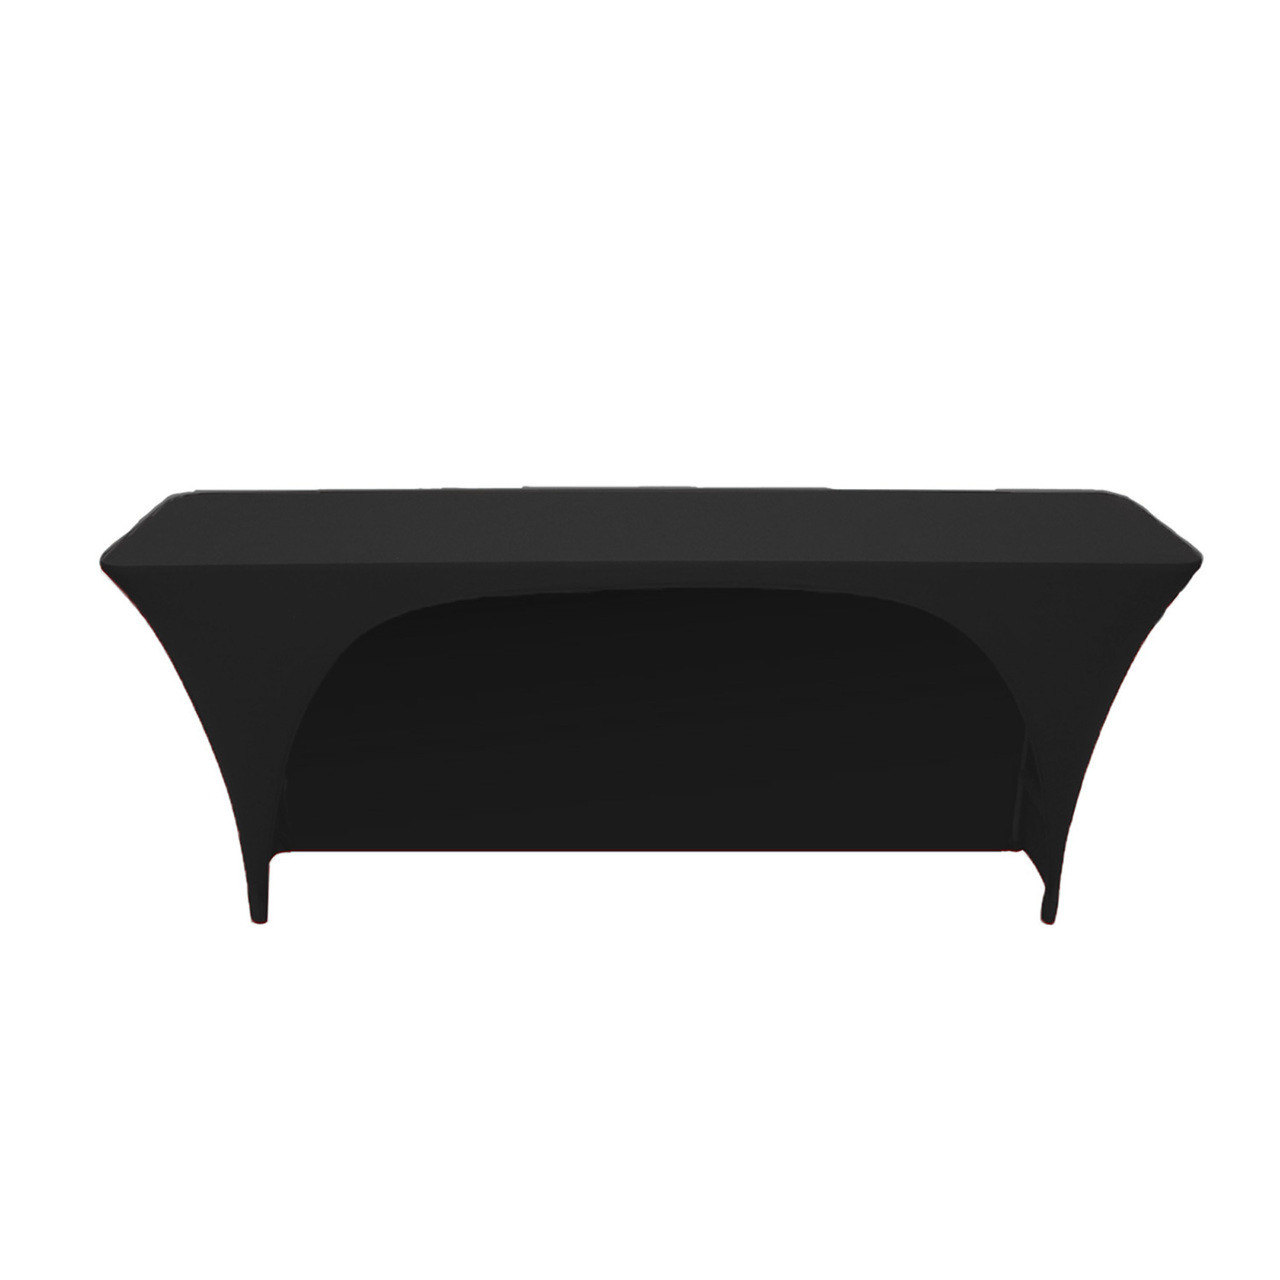 Stretch Spandex 6 ft x 18 Inches Open Back Rectangular Table Cover Black ...  sc 1 st  Your Chair Covers & Stretch Spandex 6 ft x 18 Inches Open Back Rectangular Table Cover ...